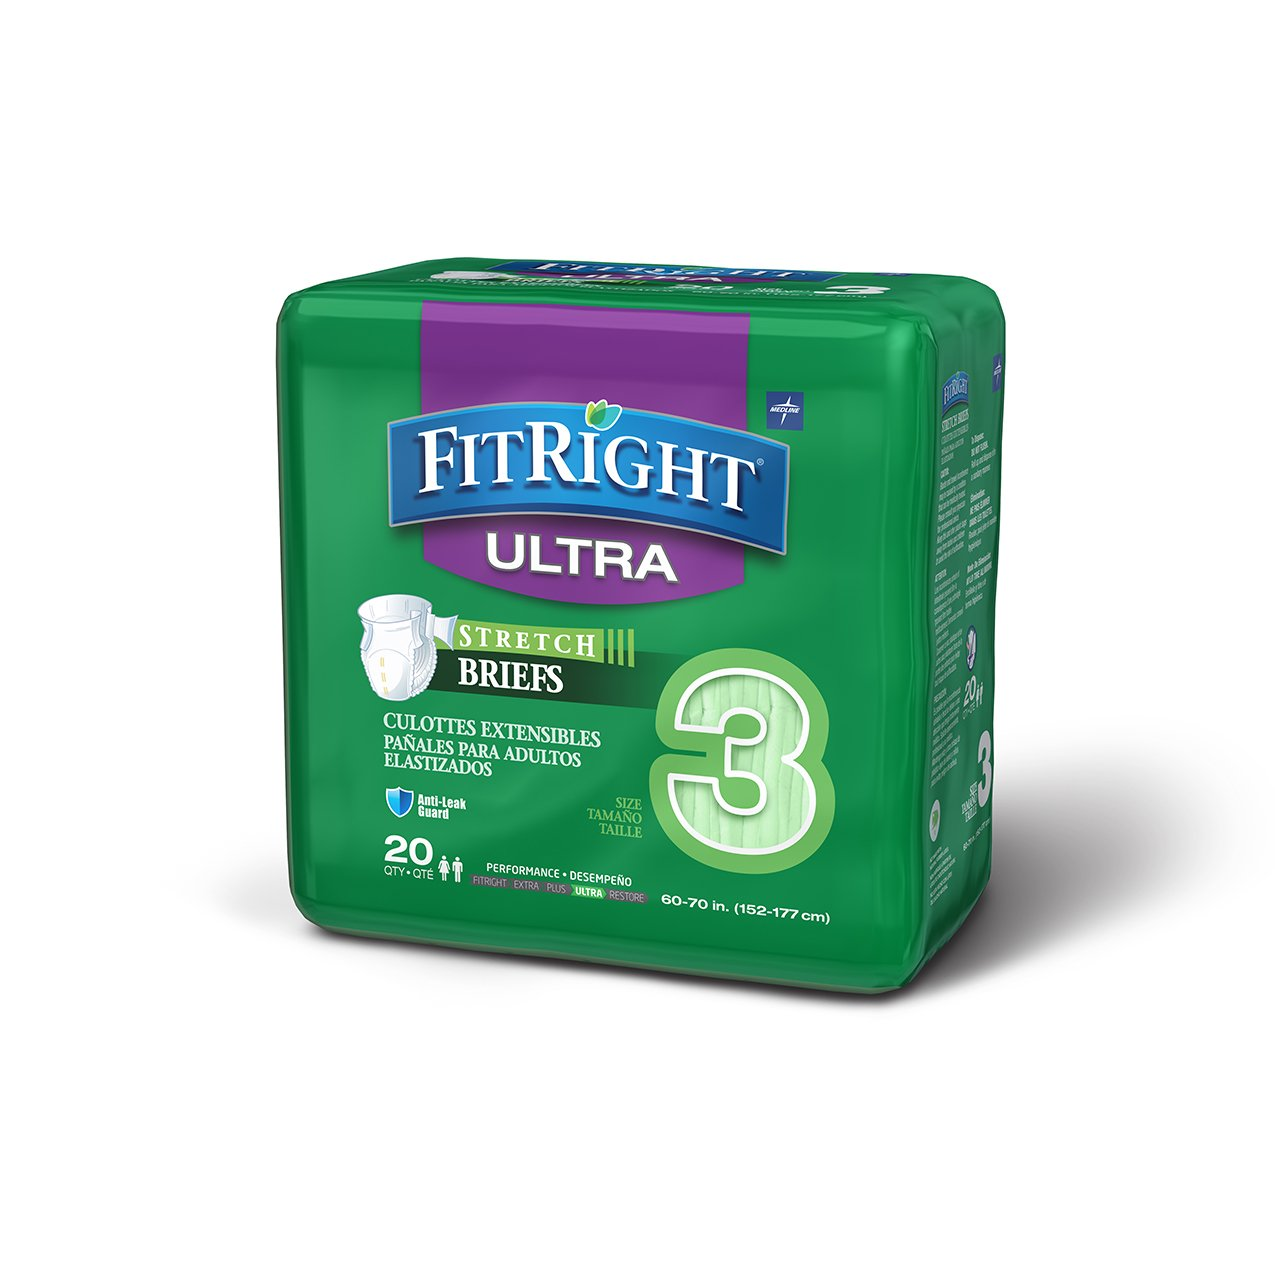 Medline Fitright Stretch Ultra Brief, X-Large/XX-Large, 4 packs of 20 (80 total)